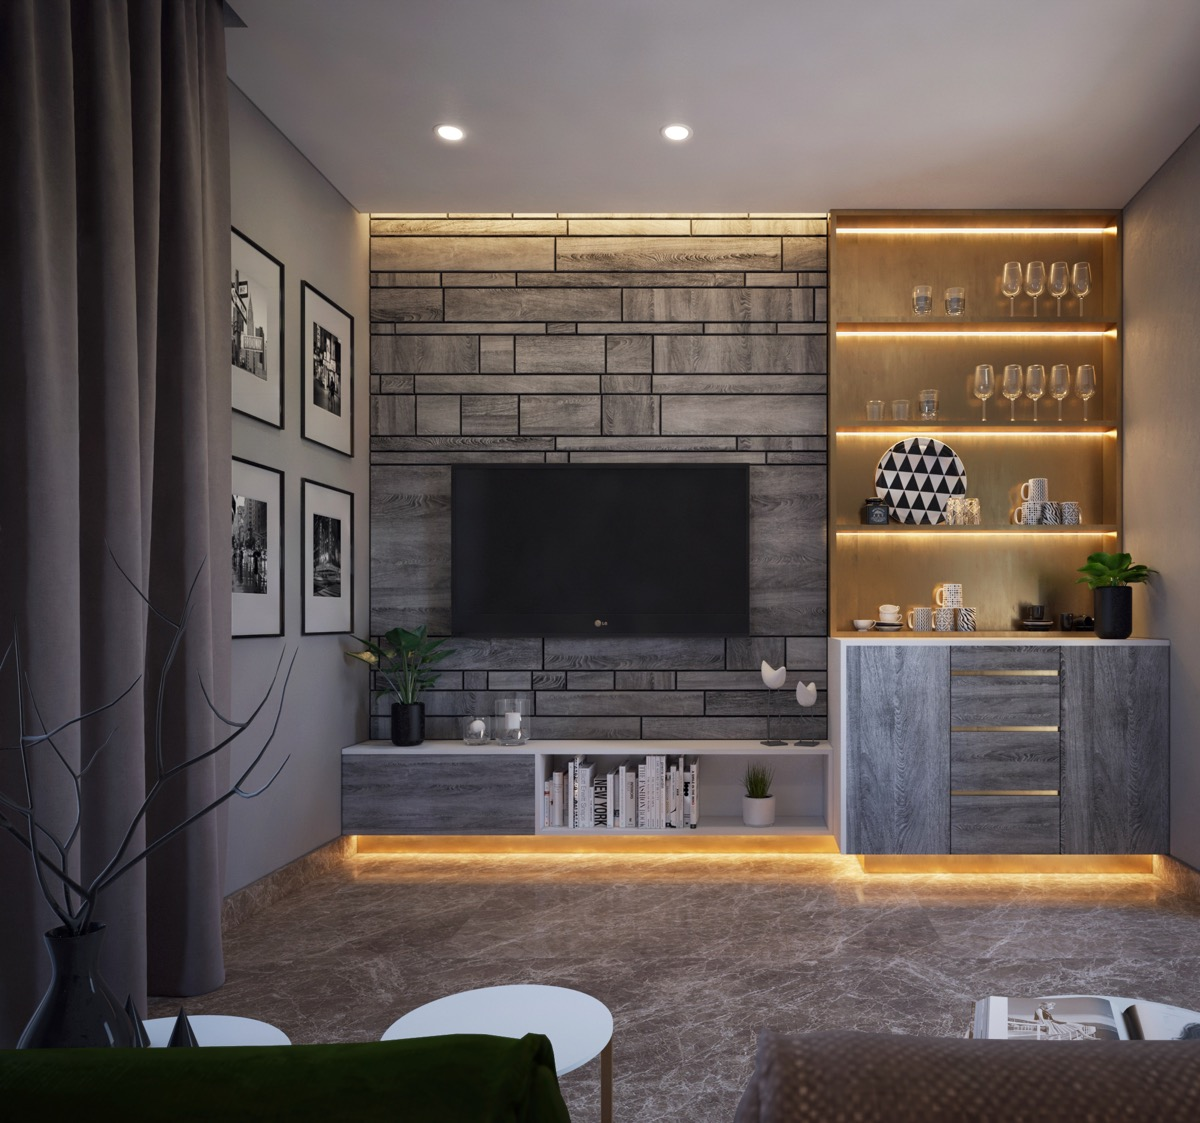 Image result for TV with bookcases around above